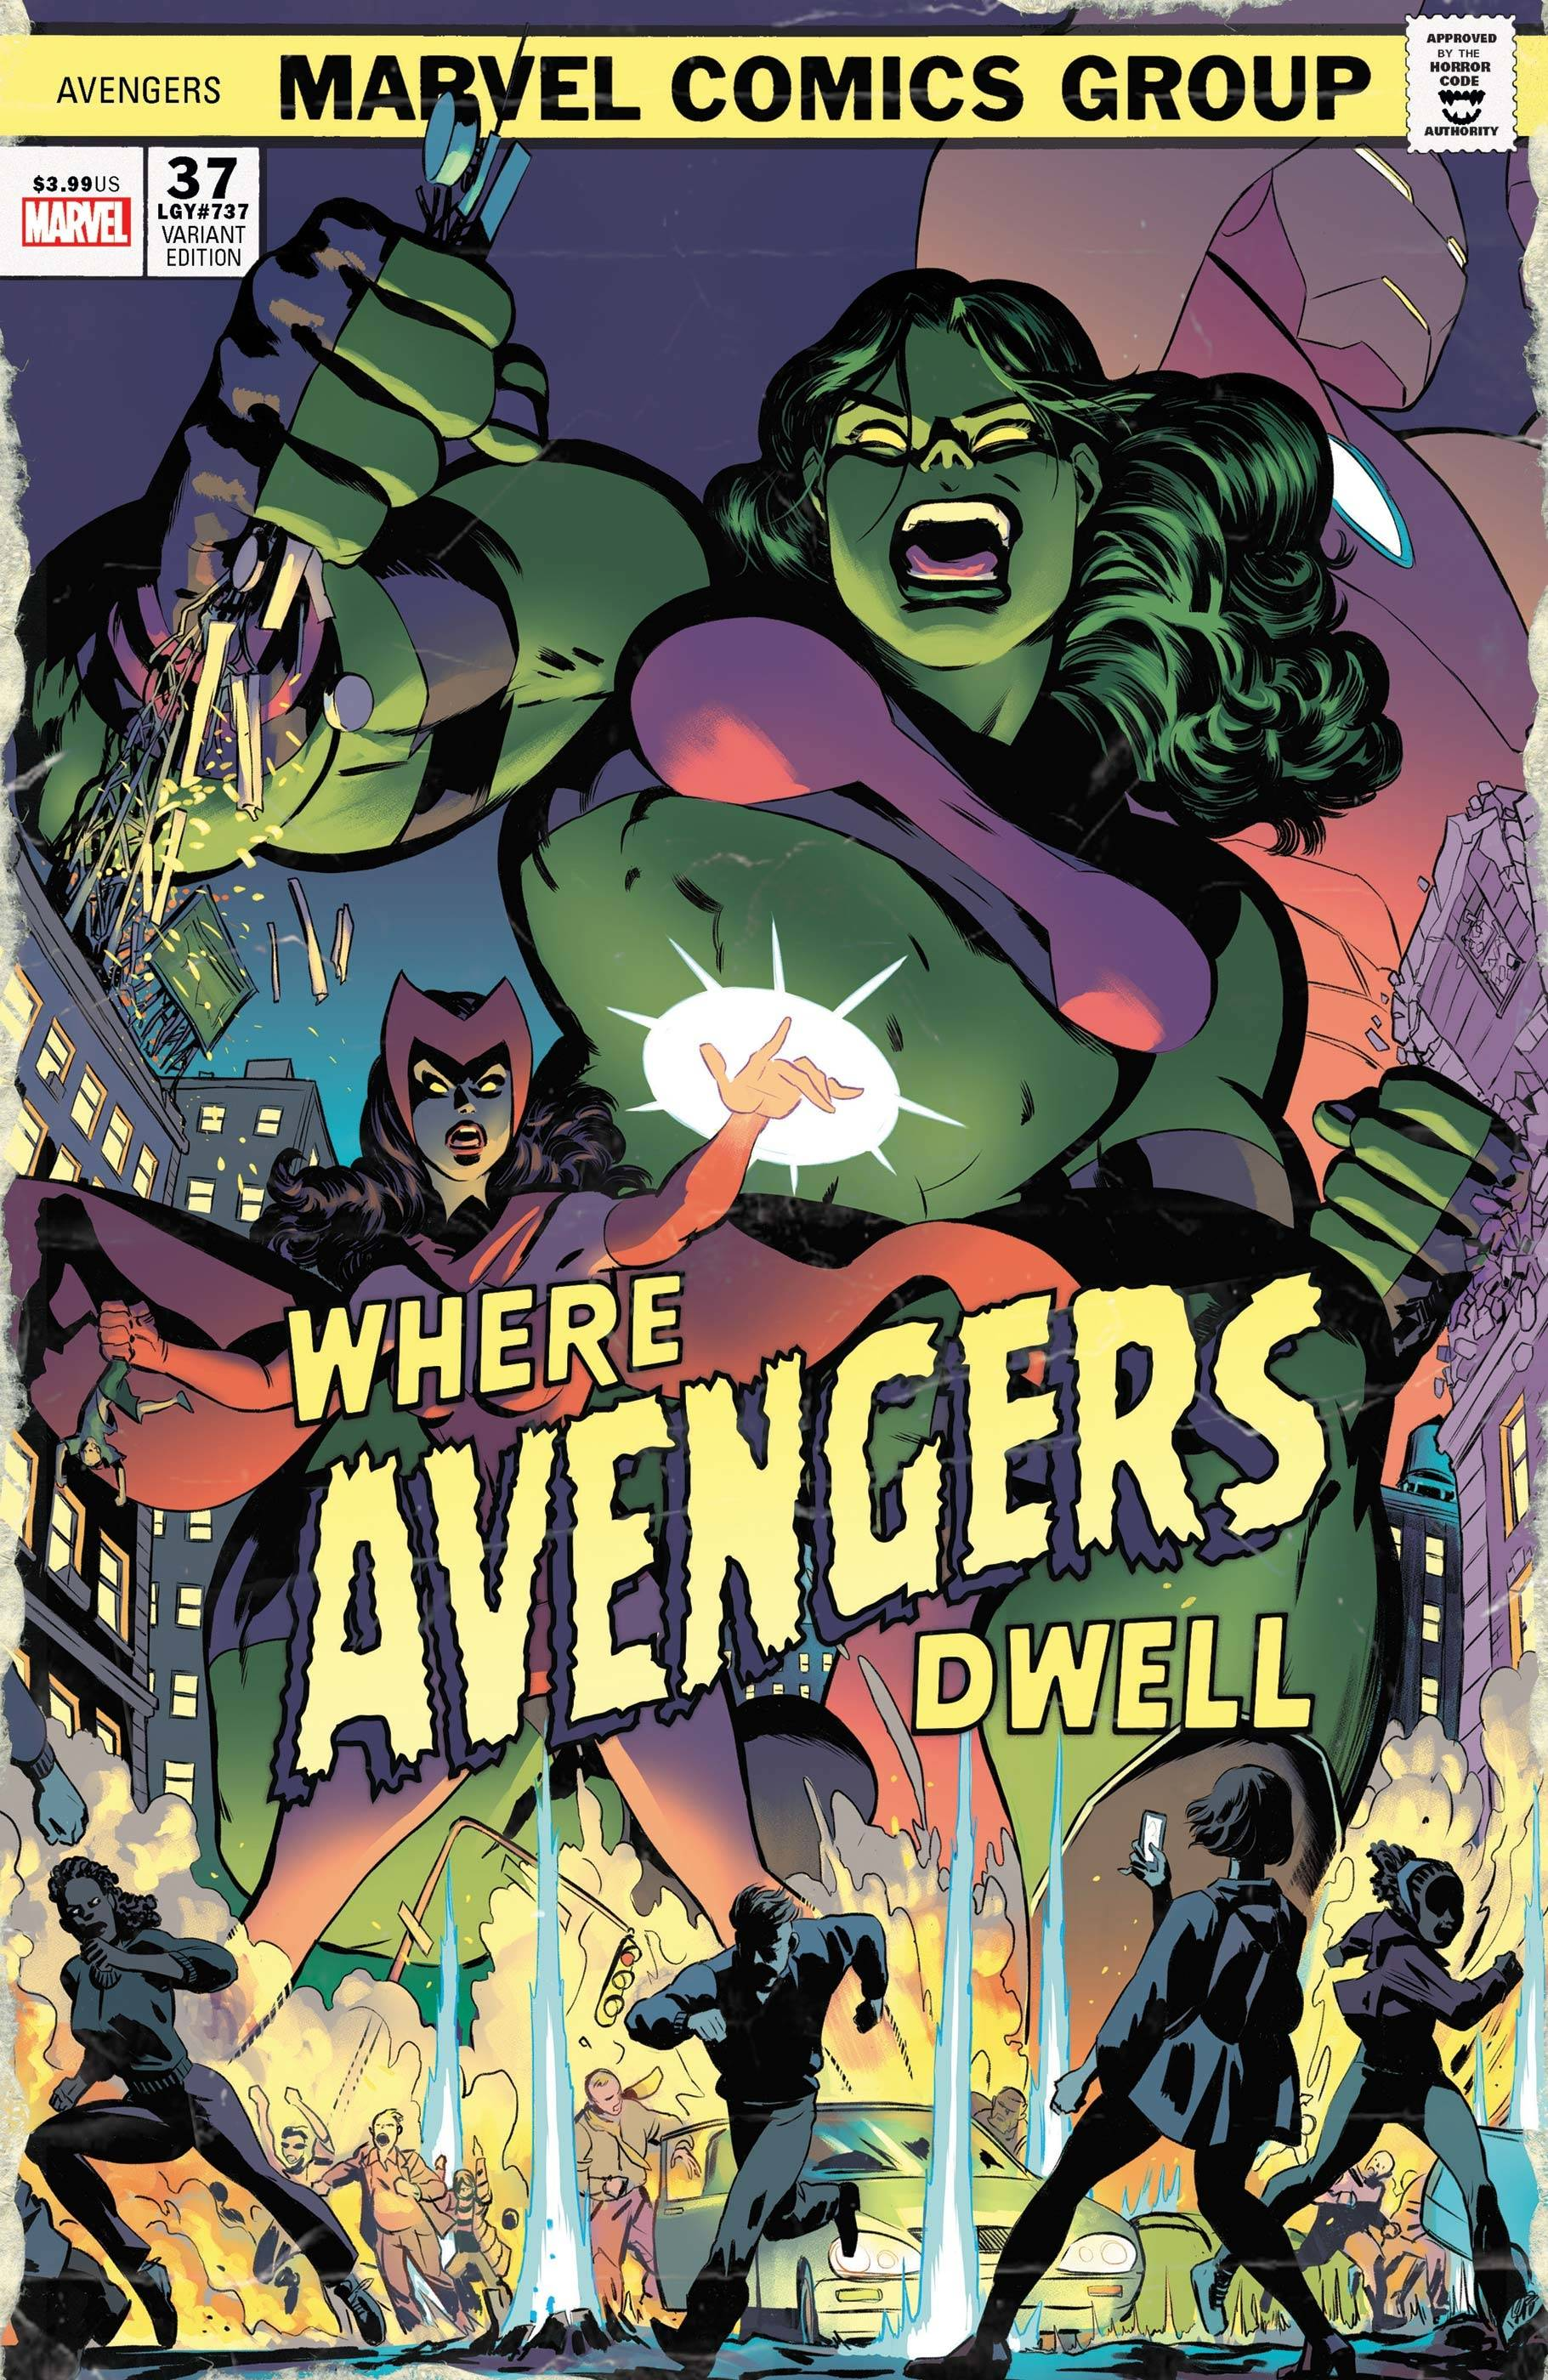 AVENGERS #37 RODRIGUEZ WHERE AVENGERS DWELL HORROR VAR